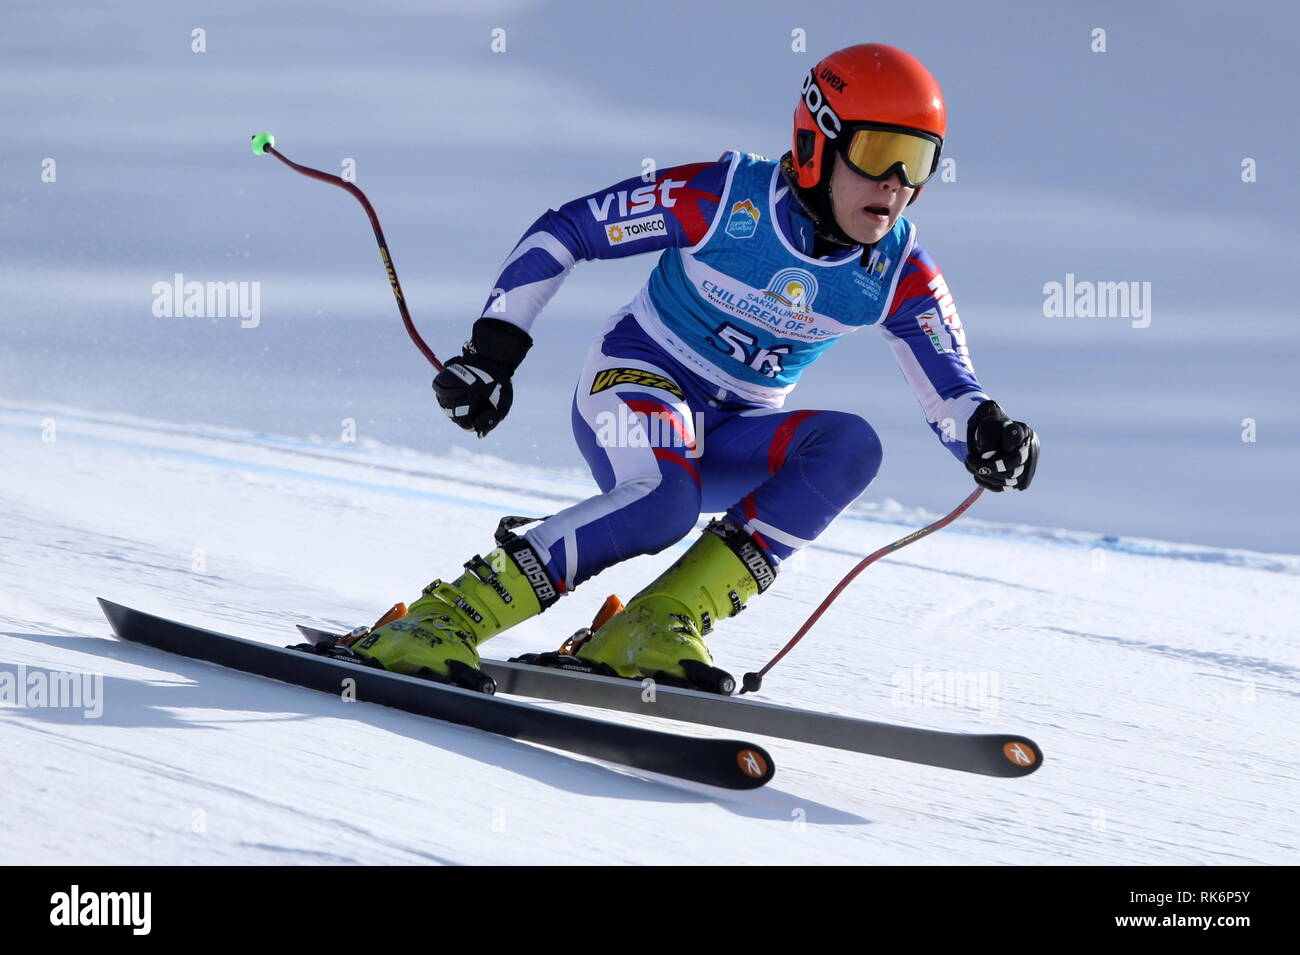 Yuzhno Sakhalinsk, Russia. 10th Feb, 2019. YUZHNO-SAKHALINSK, RUSSIA - FEBRUARY 10, 2019: Russia's Yegor Melbard competes to win the alpine skiing men's super giant slalom event at the 1st Children of Asia Winter International Sports Games. Andrei Golovanov/TASS Credit: ITAR-TASS News Agency/Alamy Live News - Stock Image